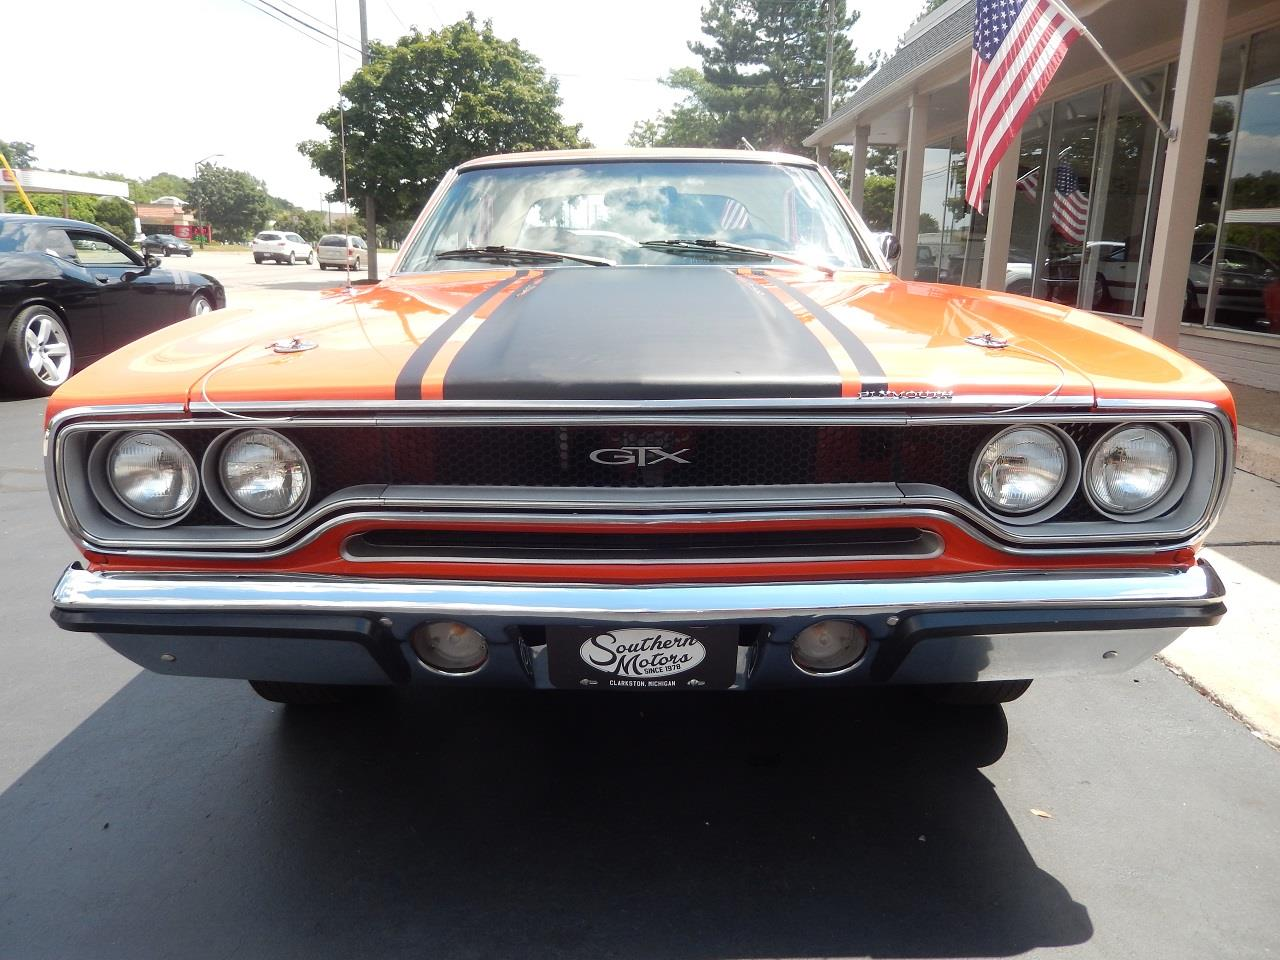 Large Picture of '70 Plymouth GTX Offered by Southern Motors - NUI7